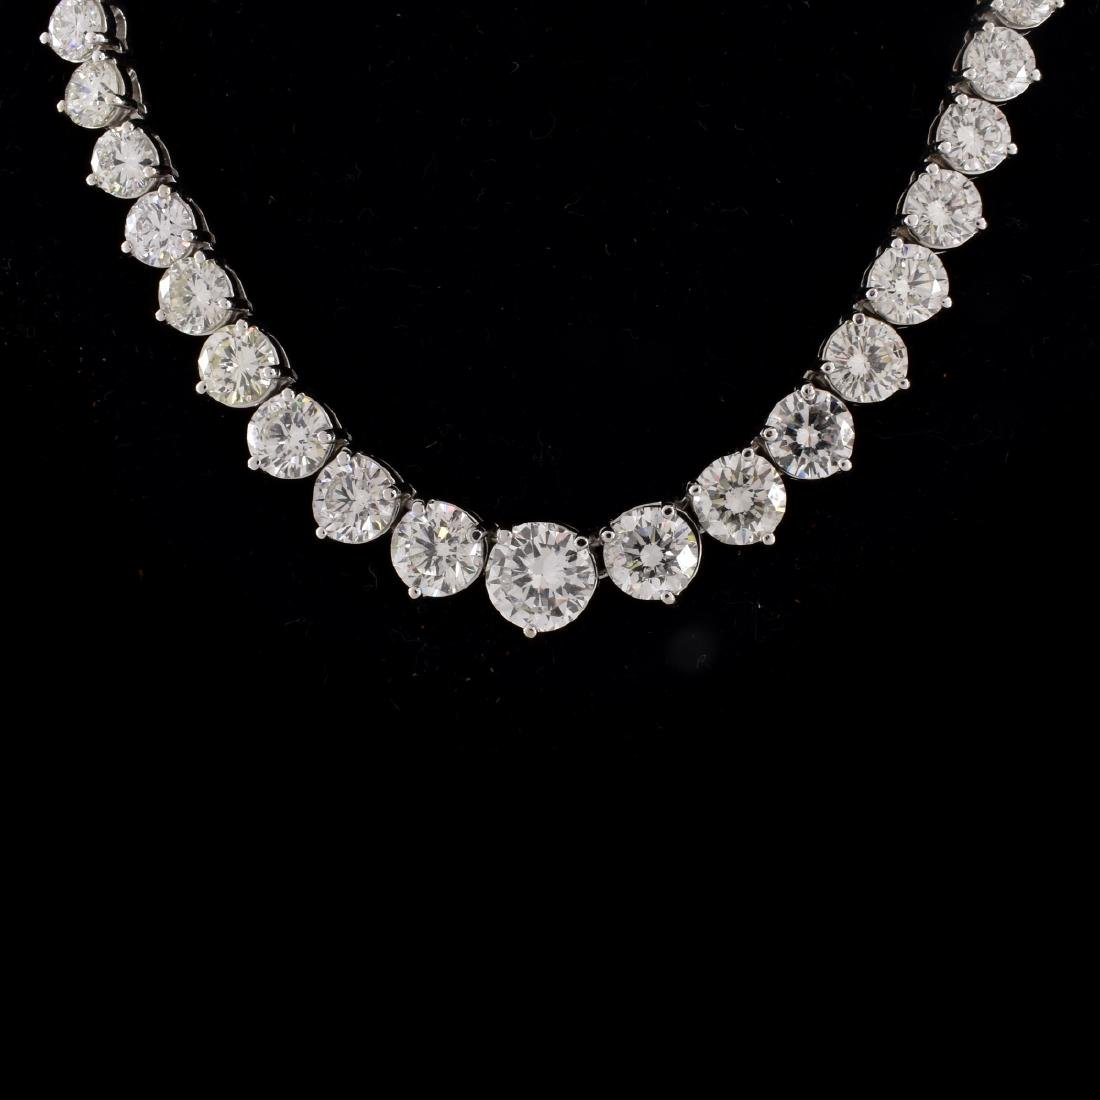 50.0ct TW Diamond and 18K Gold Necklace - 2